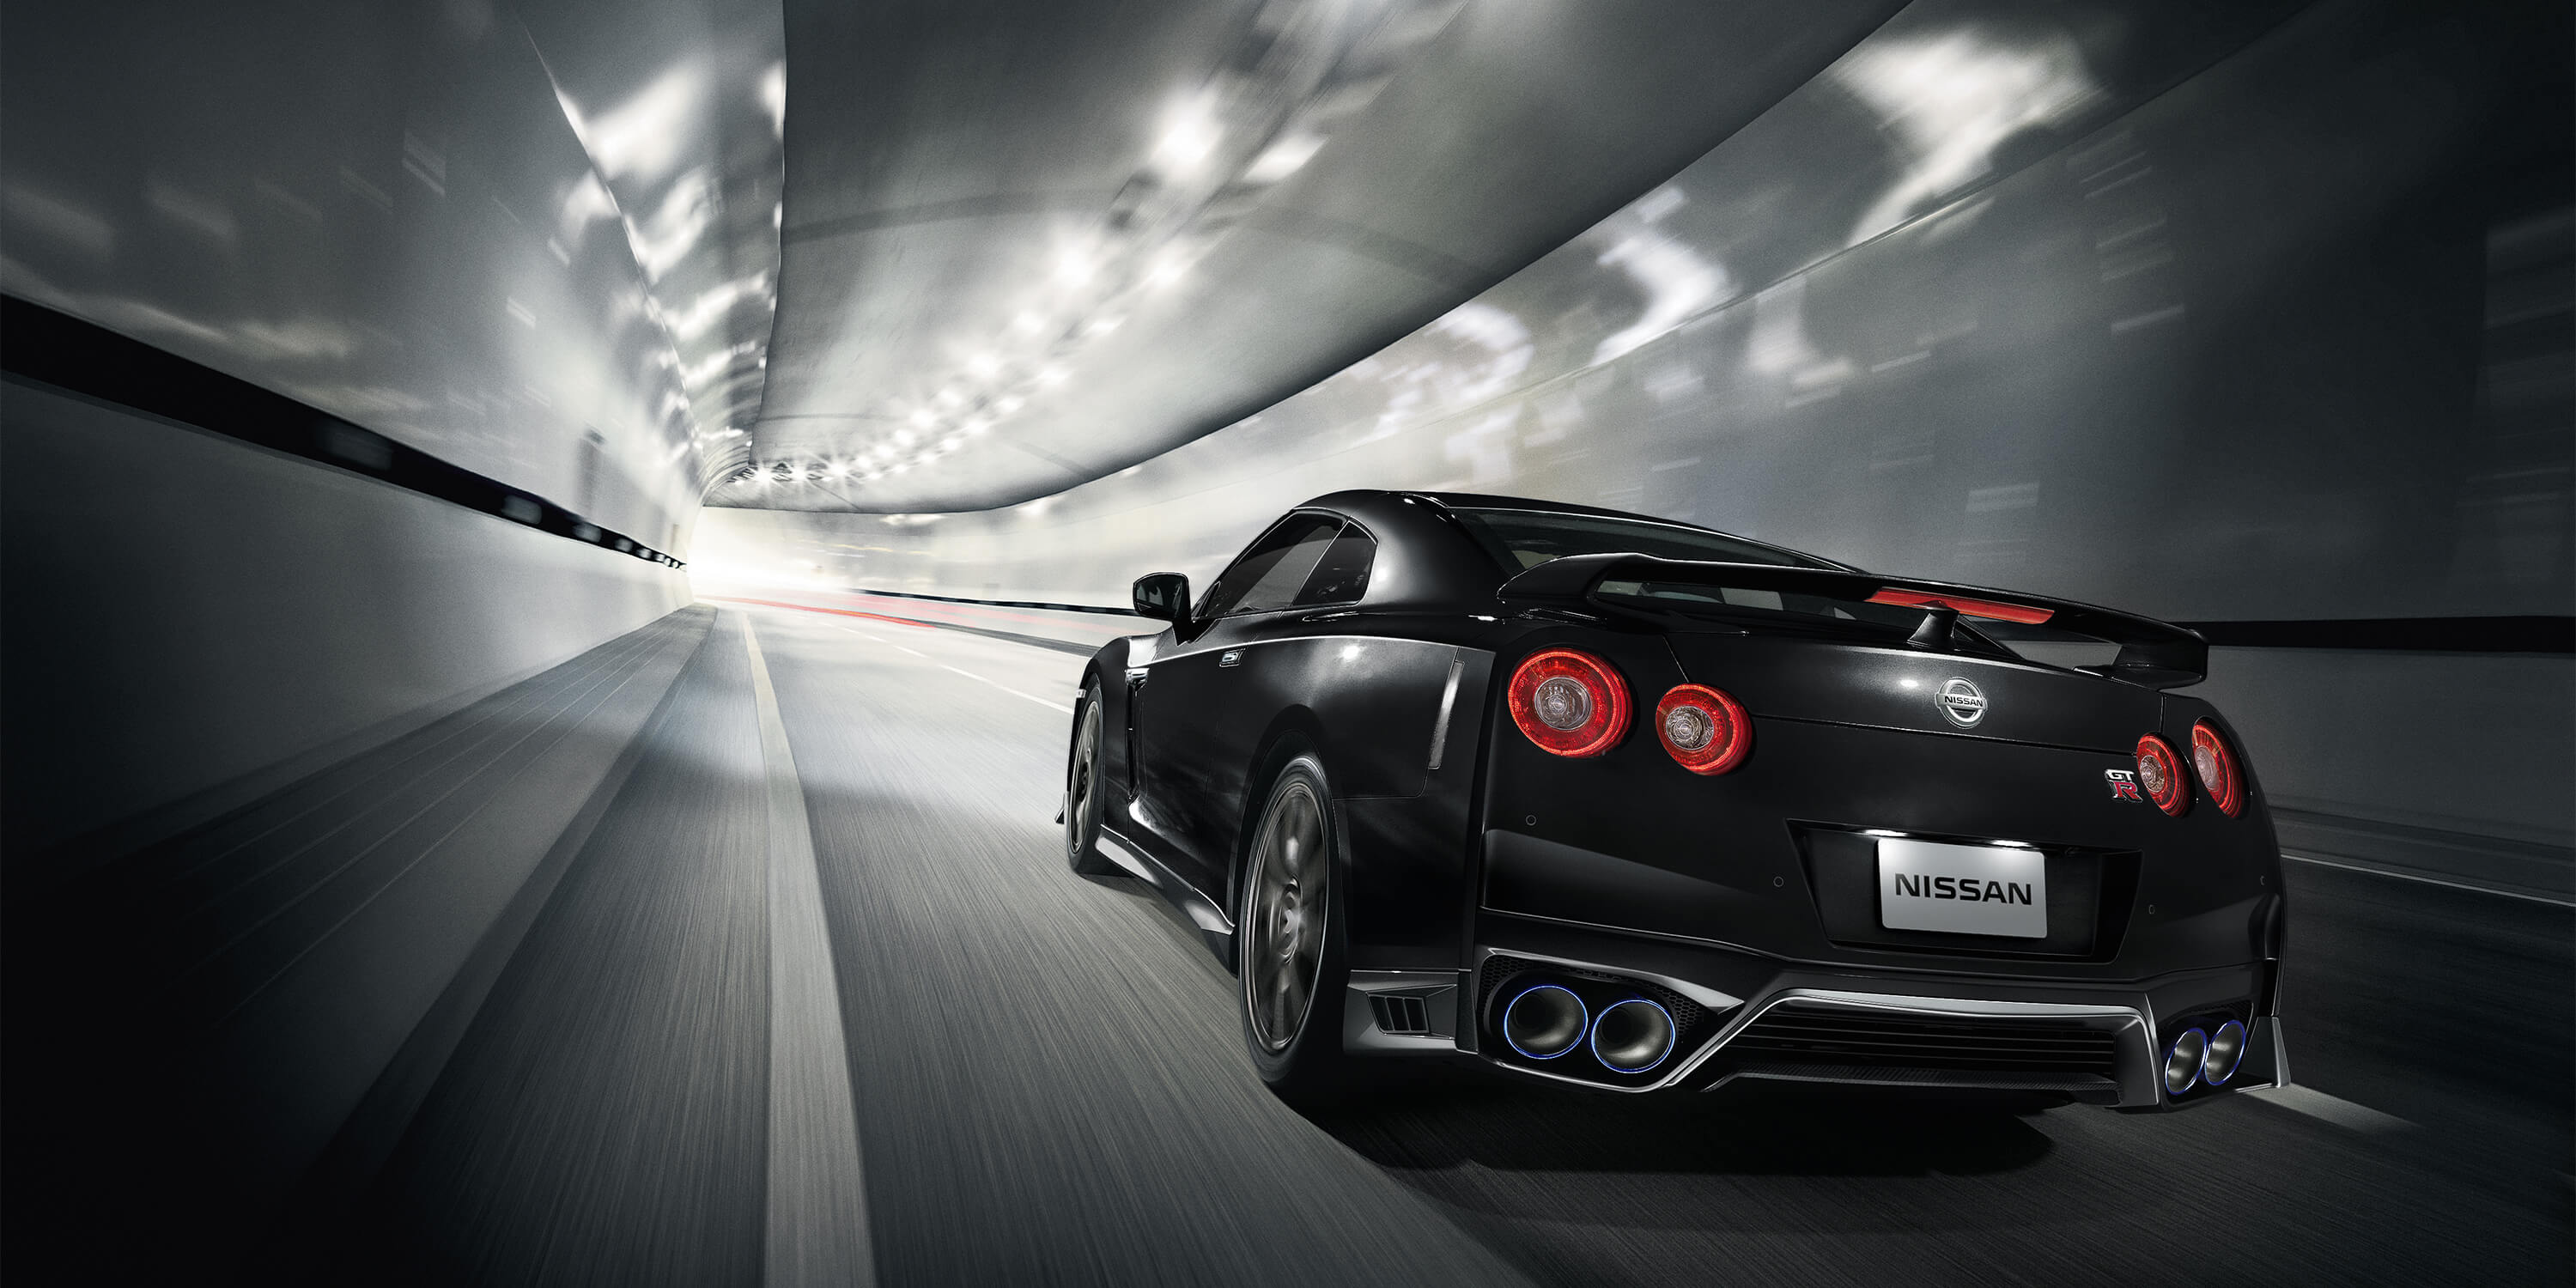 gtr-in-tunnel